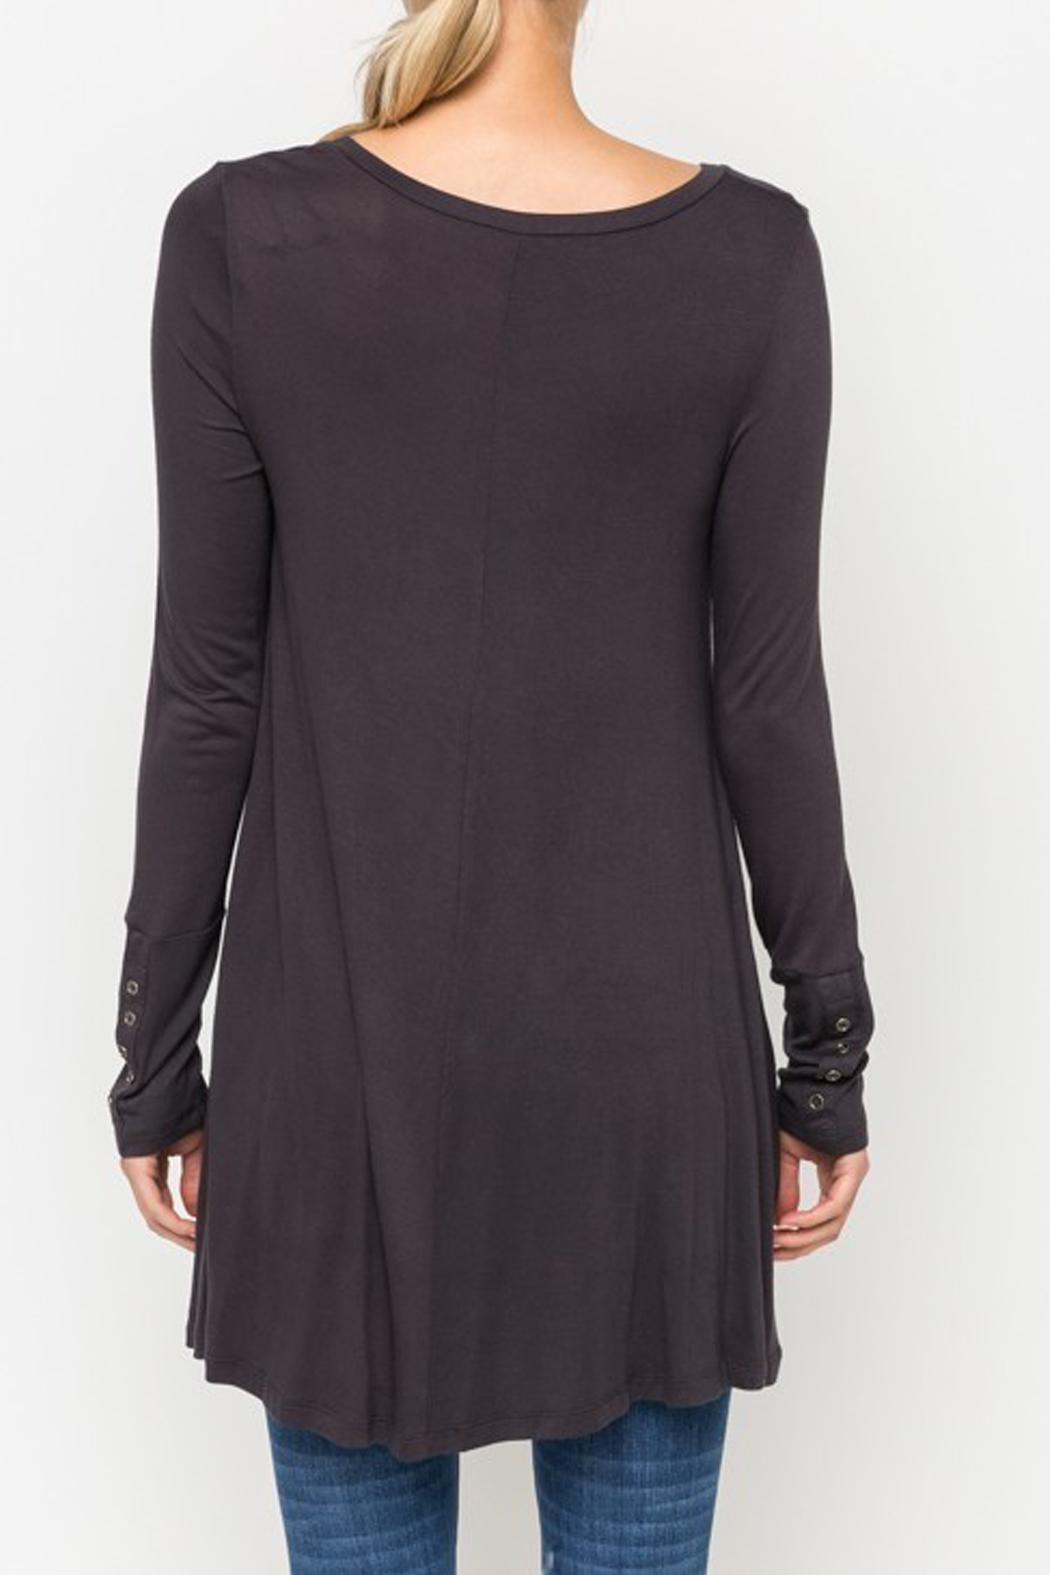 Mystree Basic Charcoal Top - Side Cropped Image